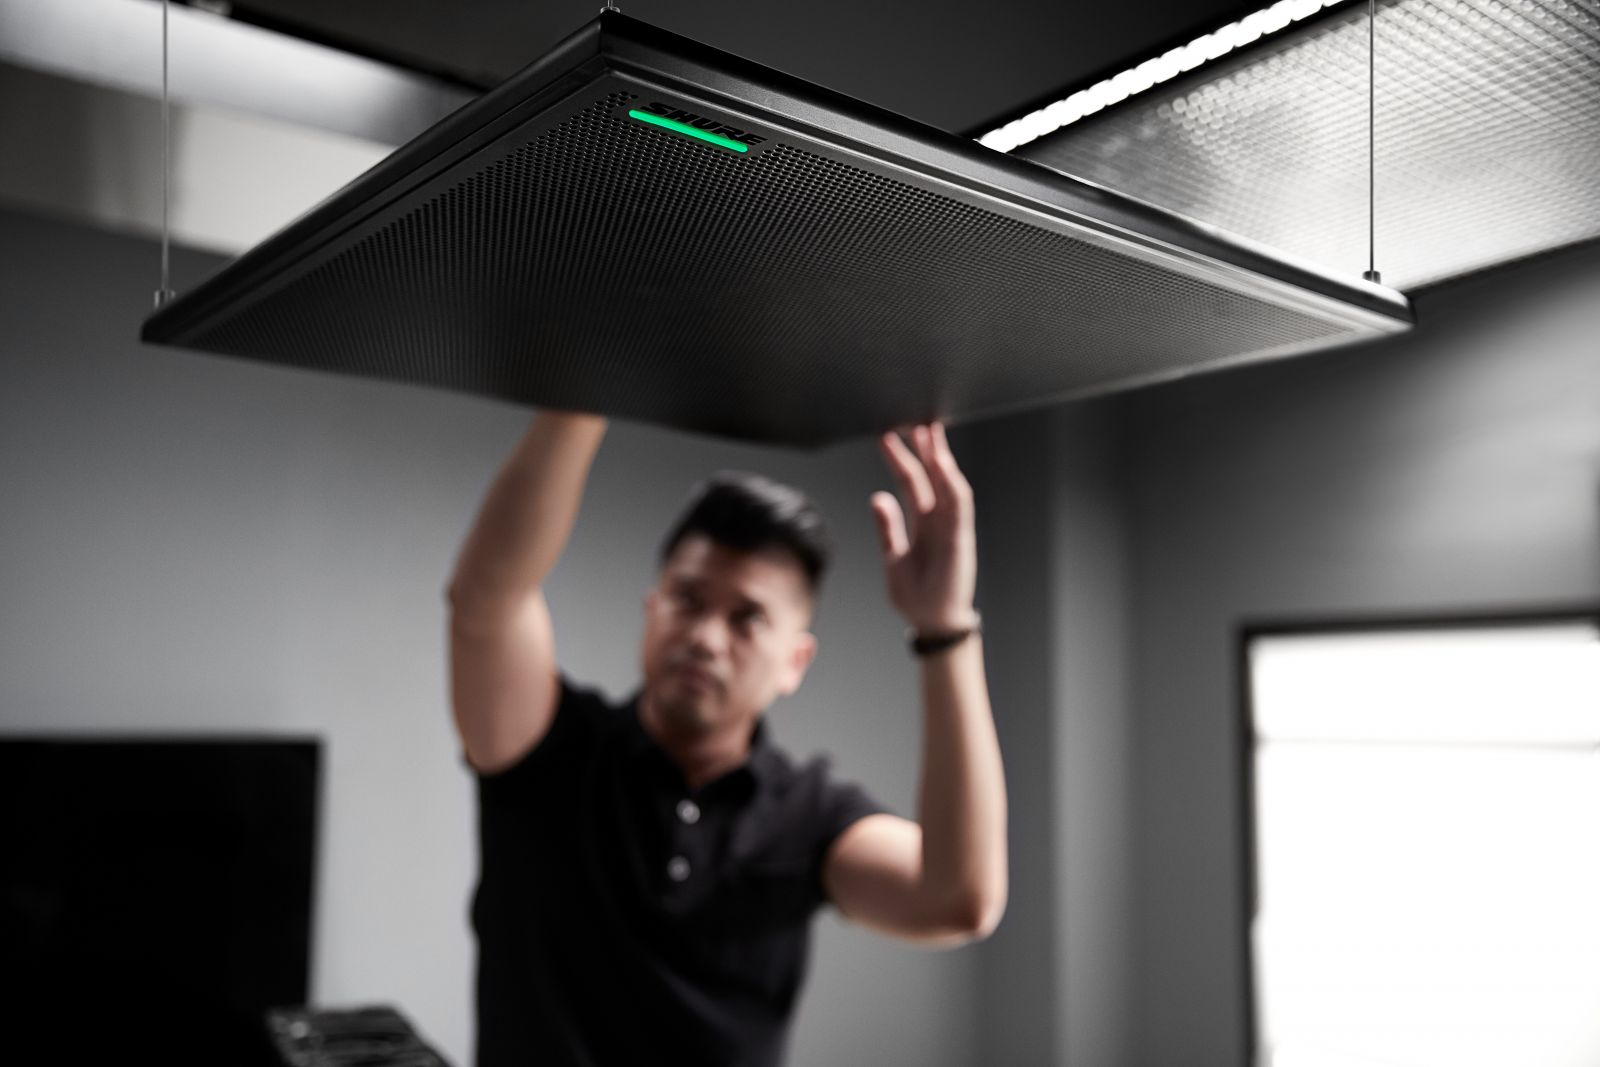 MXA910 being hung on ceiling